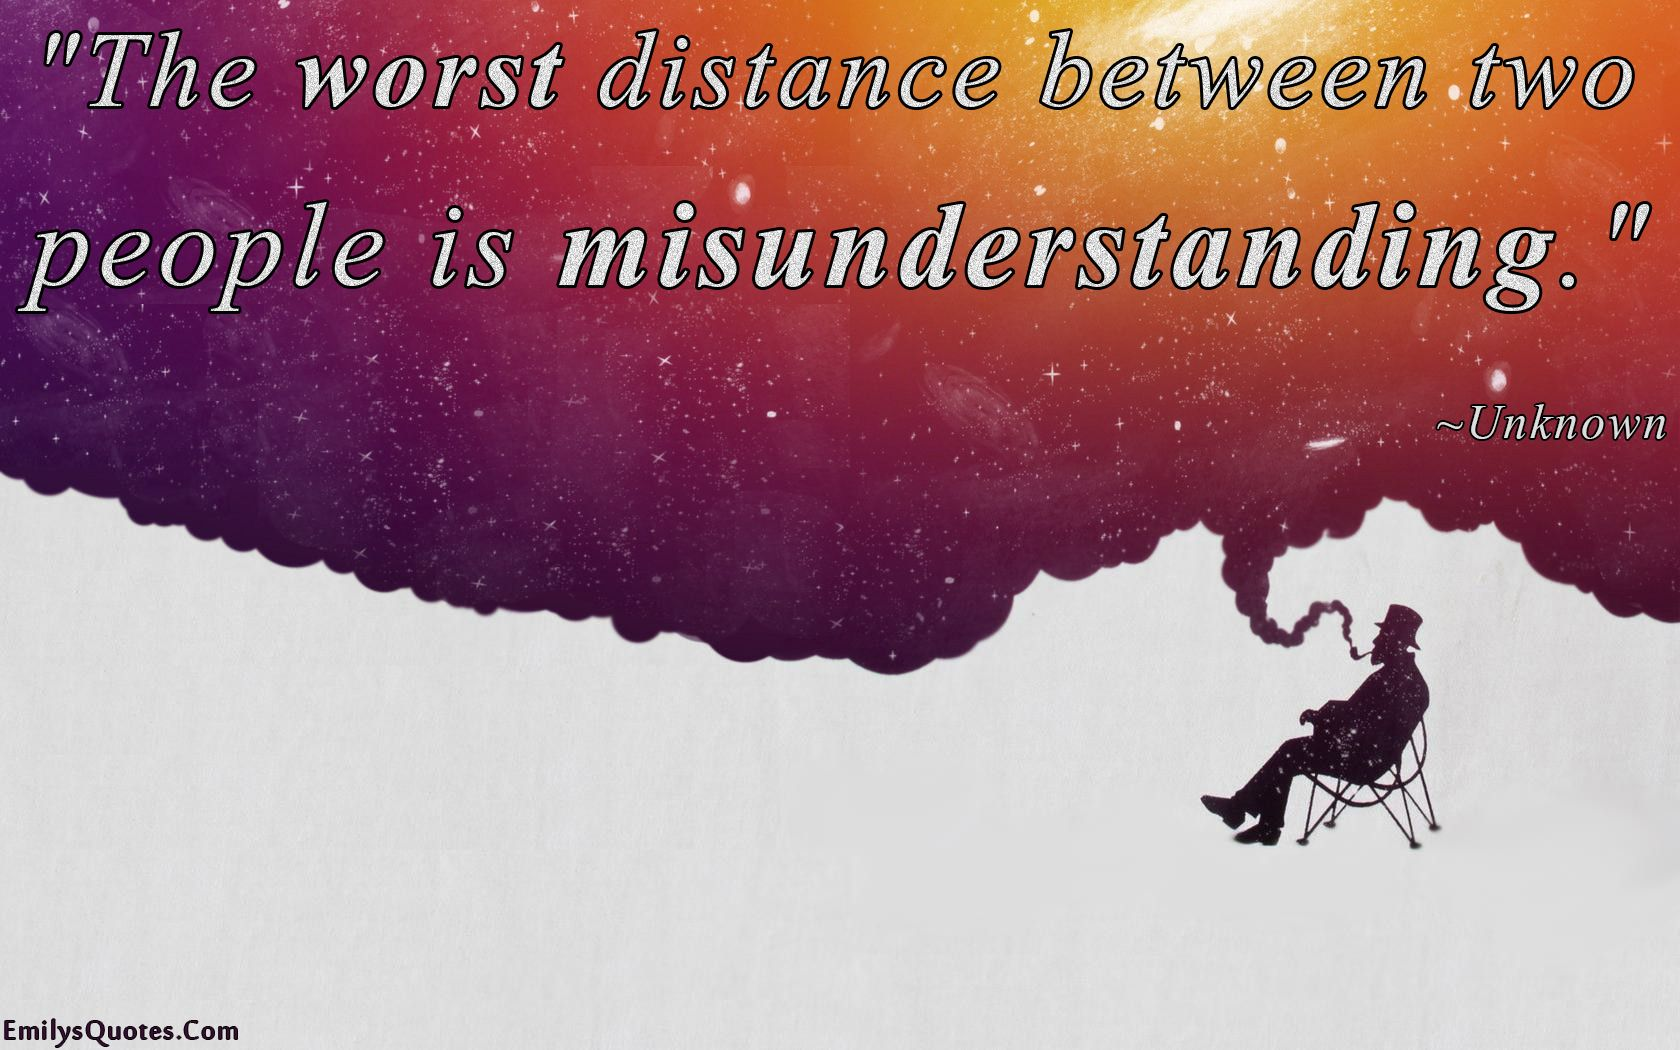 Quotes About Friendship Misunderstanding The Worst Distance Between Two People Is Misunderstanding  Quotes